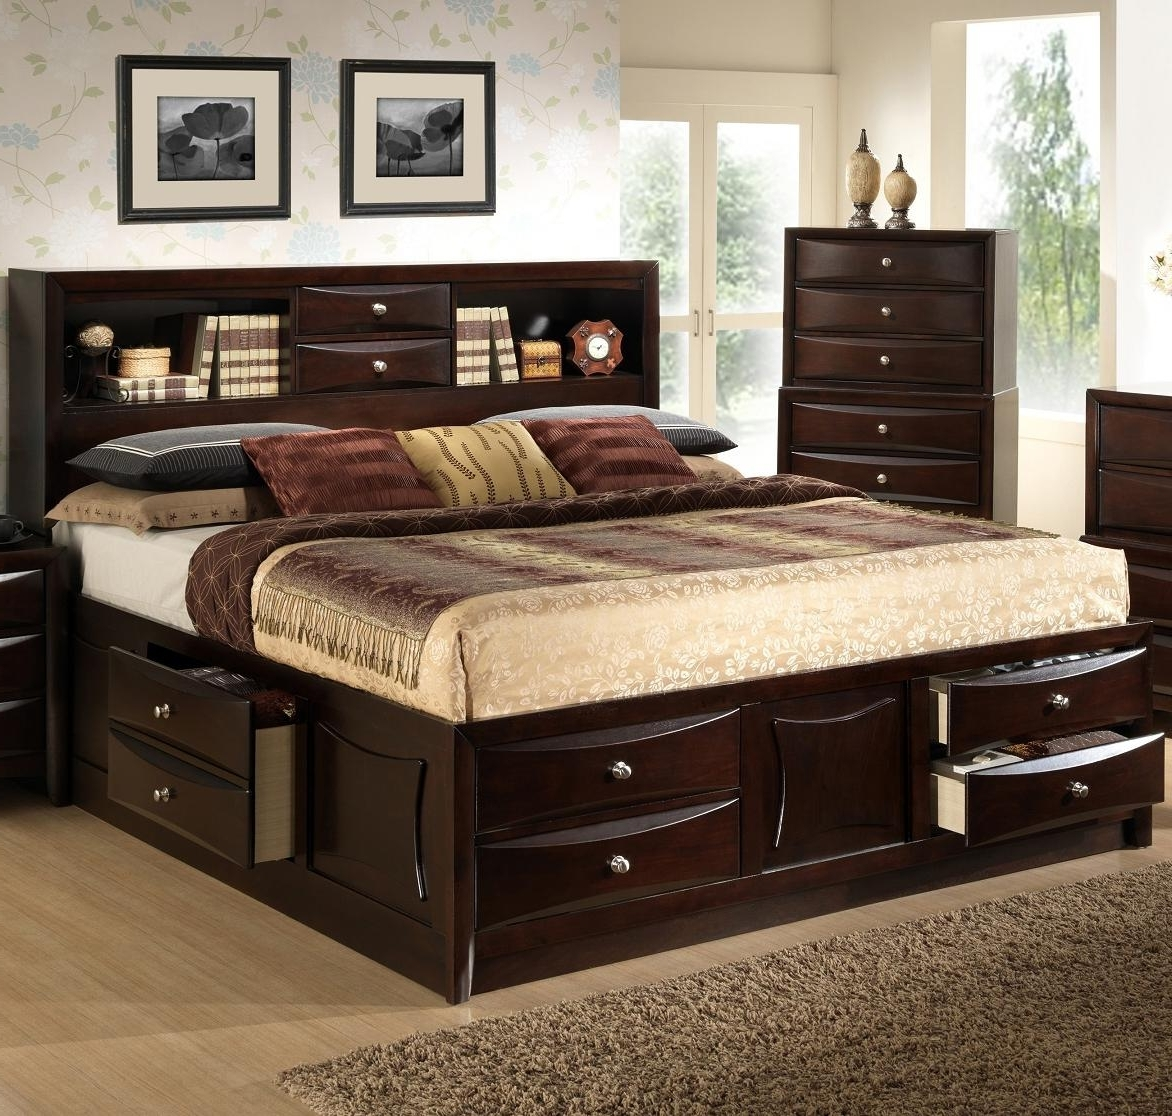 Widely Used Lifestyle Todd Queen Storage Bed W/ Bookcase Headboard (View 15 of 15)